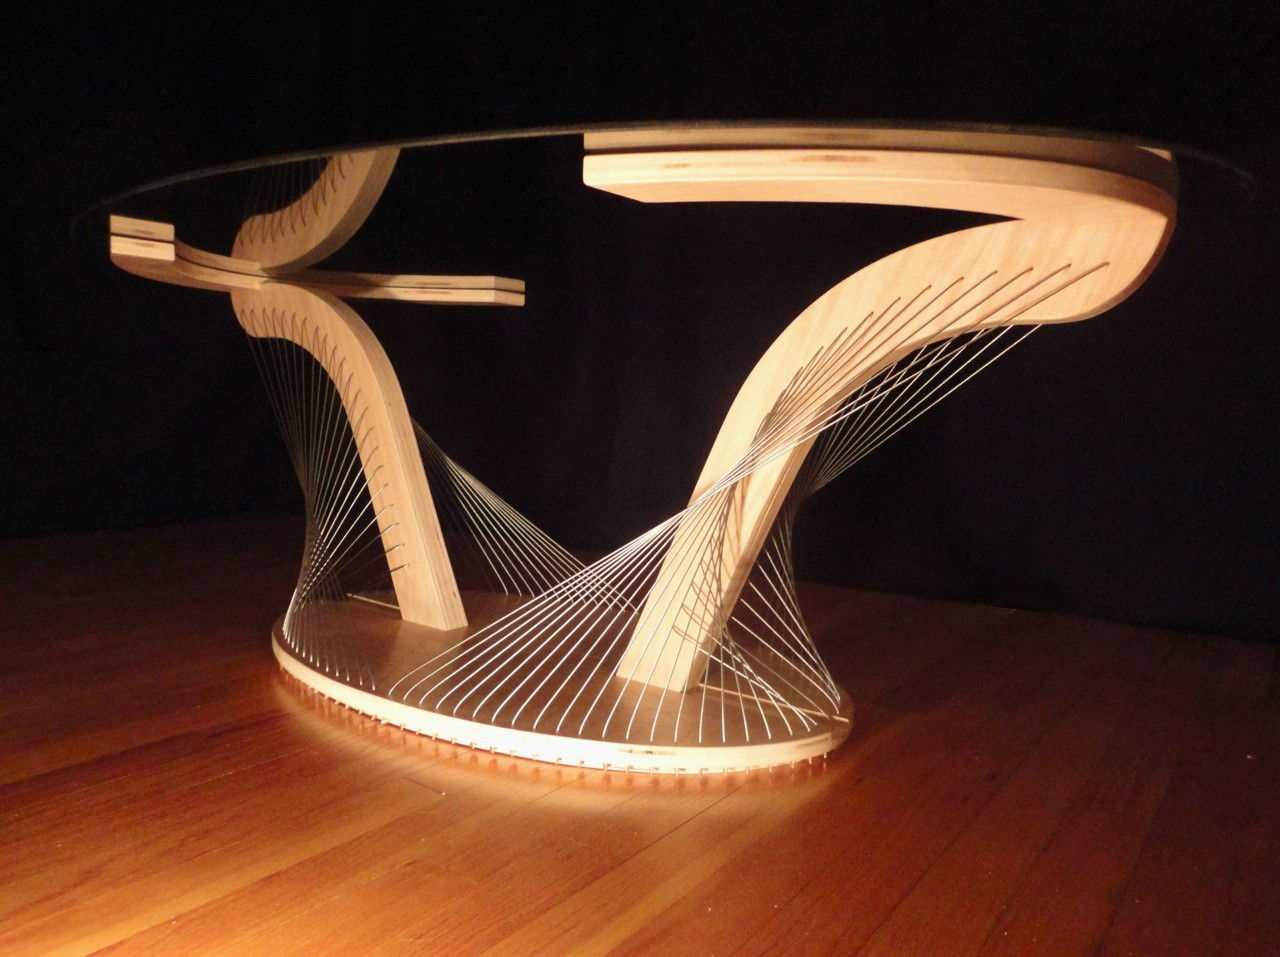 Awesome furniture are held together only by tension